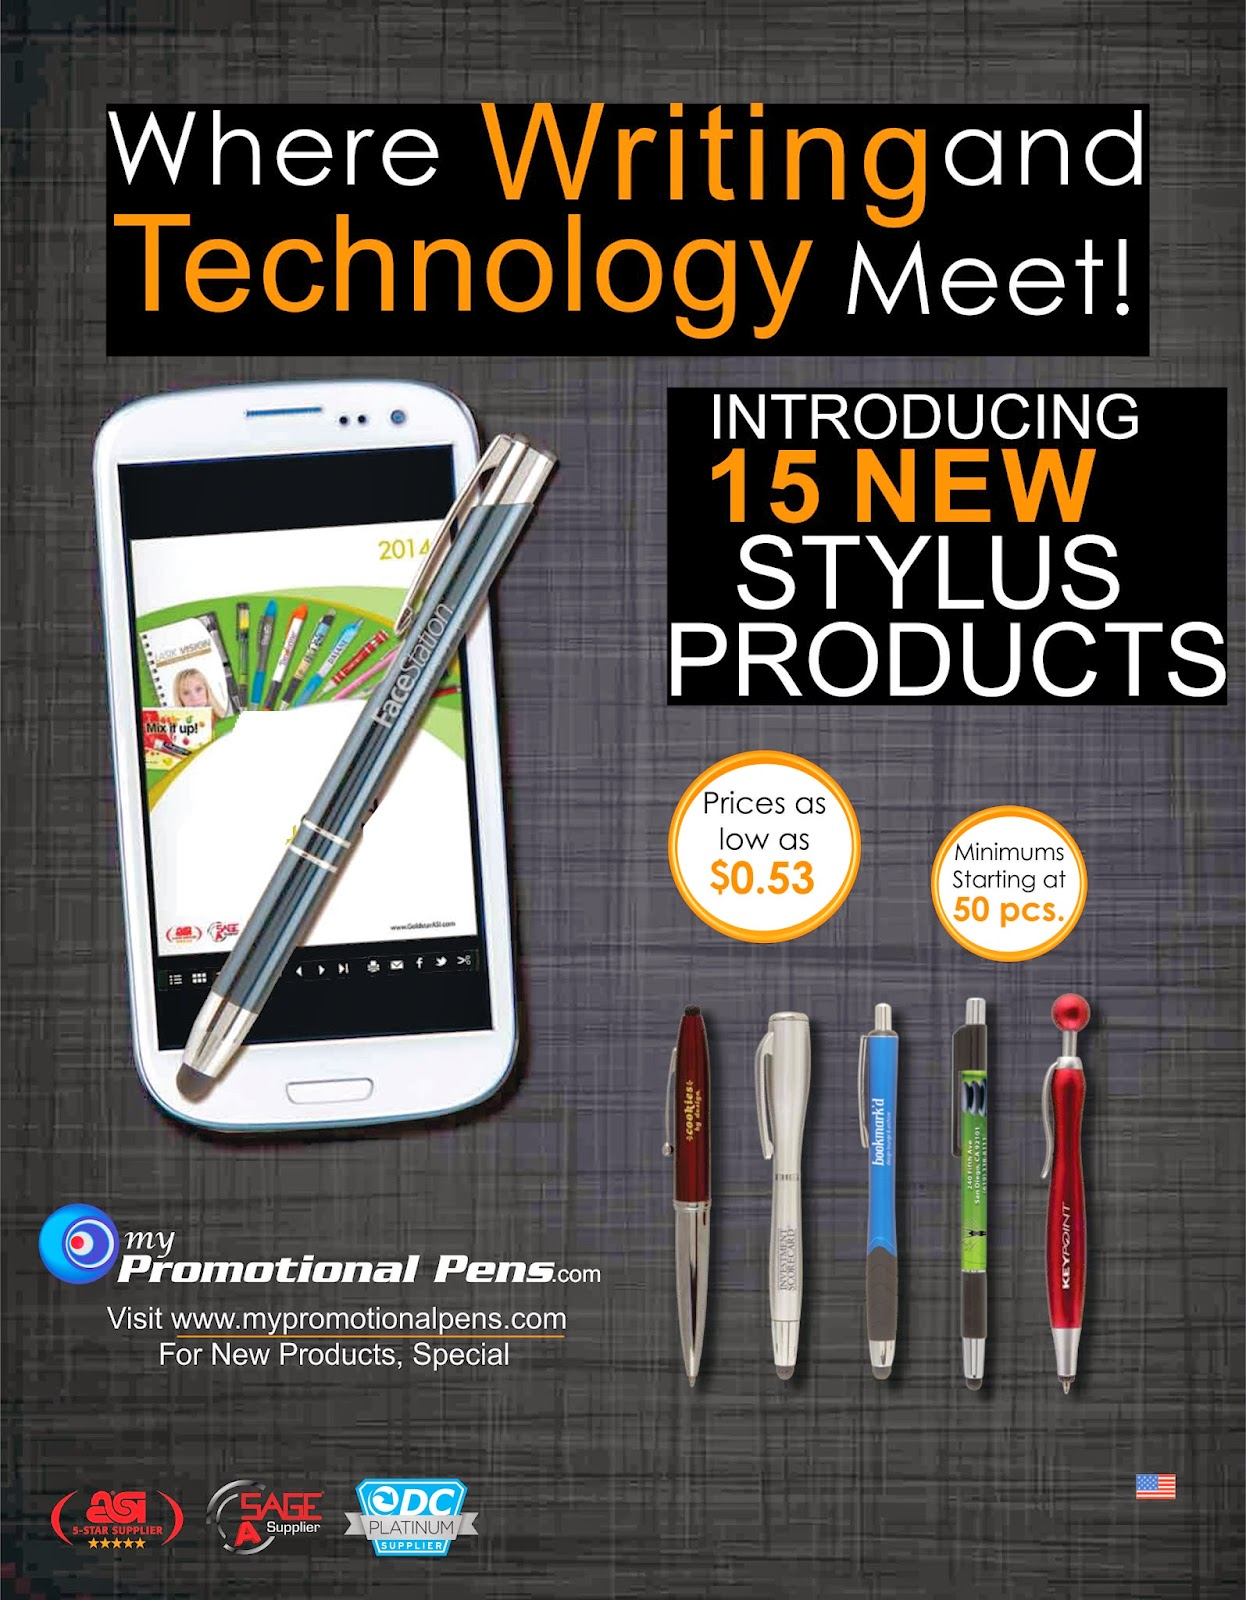 https://www.mypromotionalpens.com/Stylus-Promotional-Pens-s/757.htm?searching=Y&sort=9&cat=757&search=stylus%20goldstar&show=30&page=1